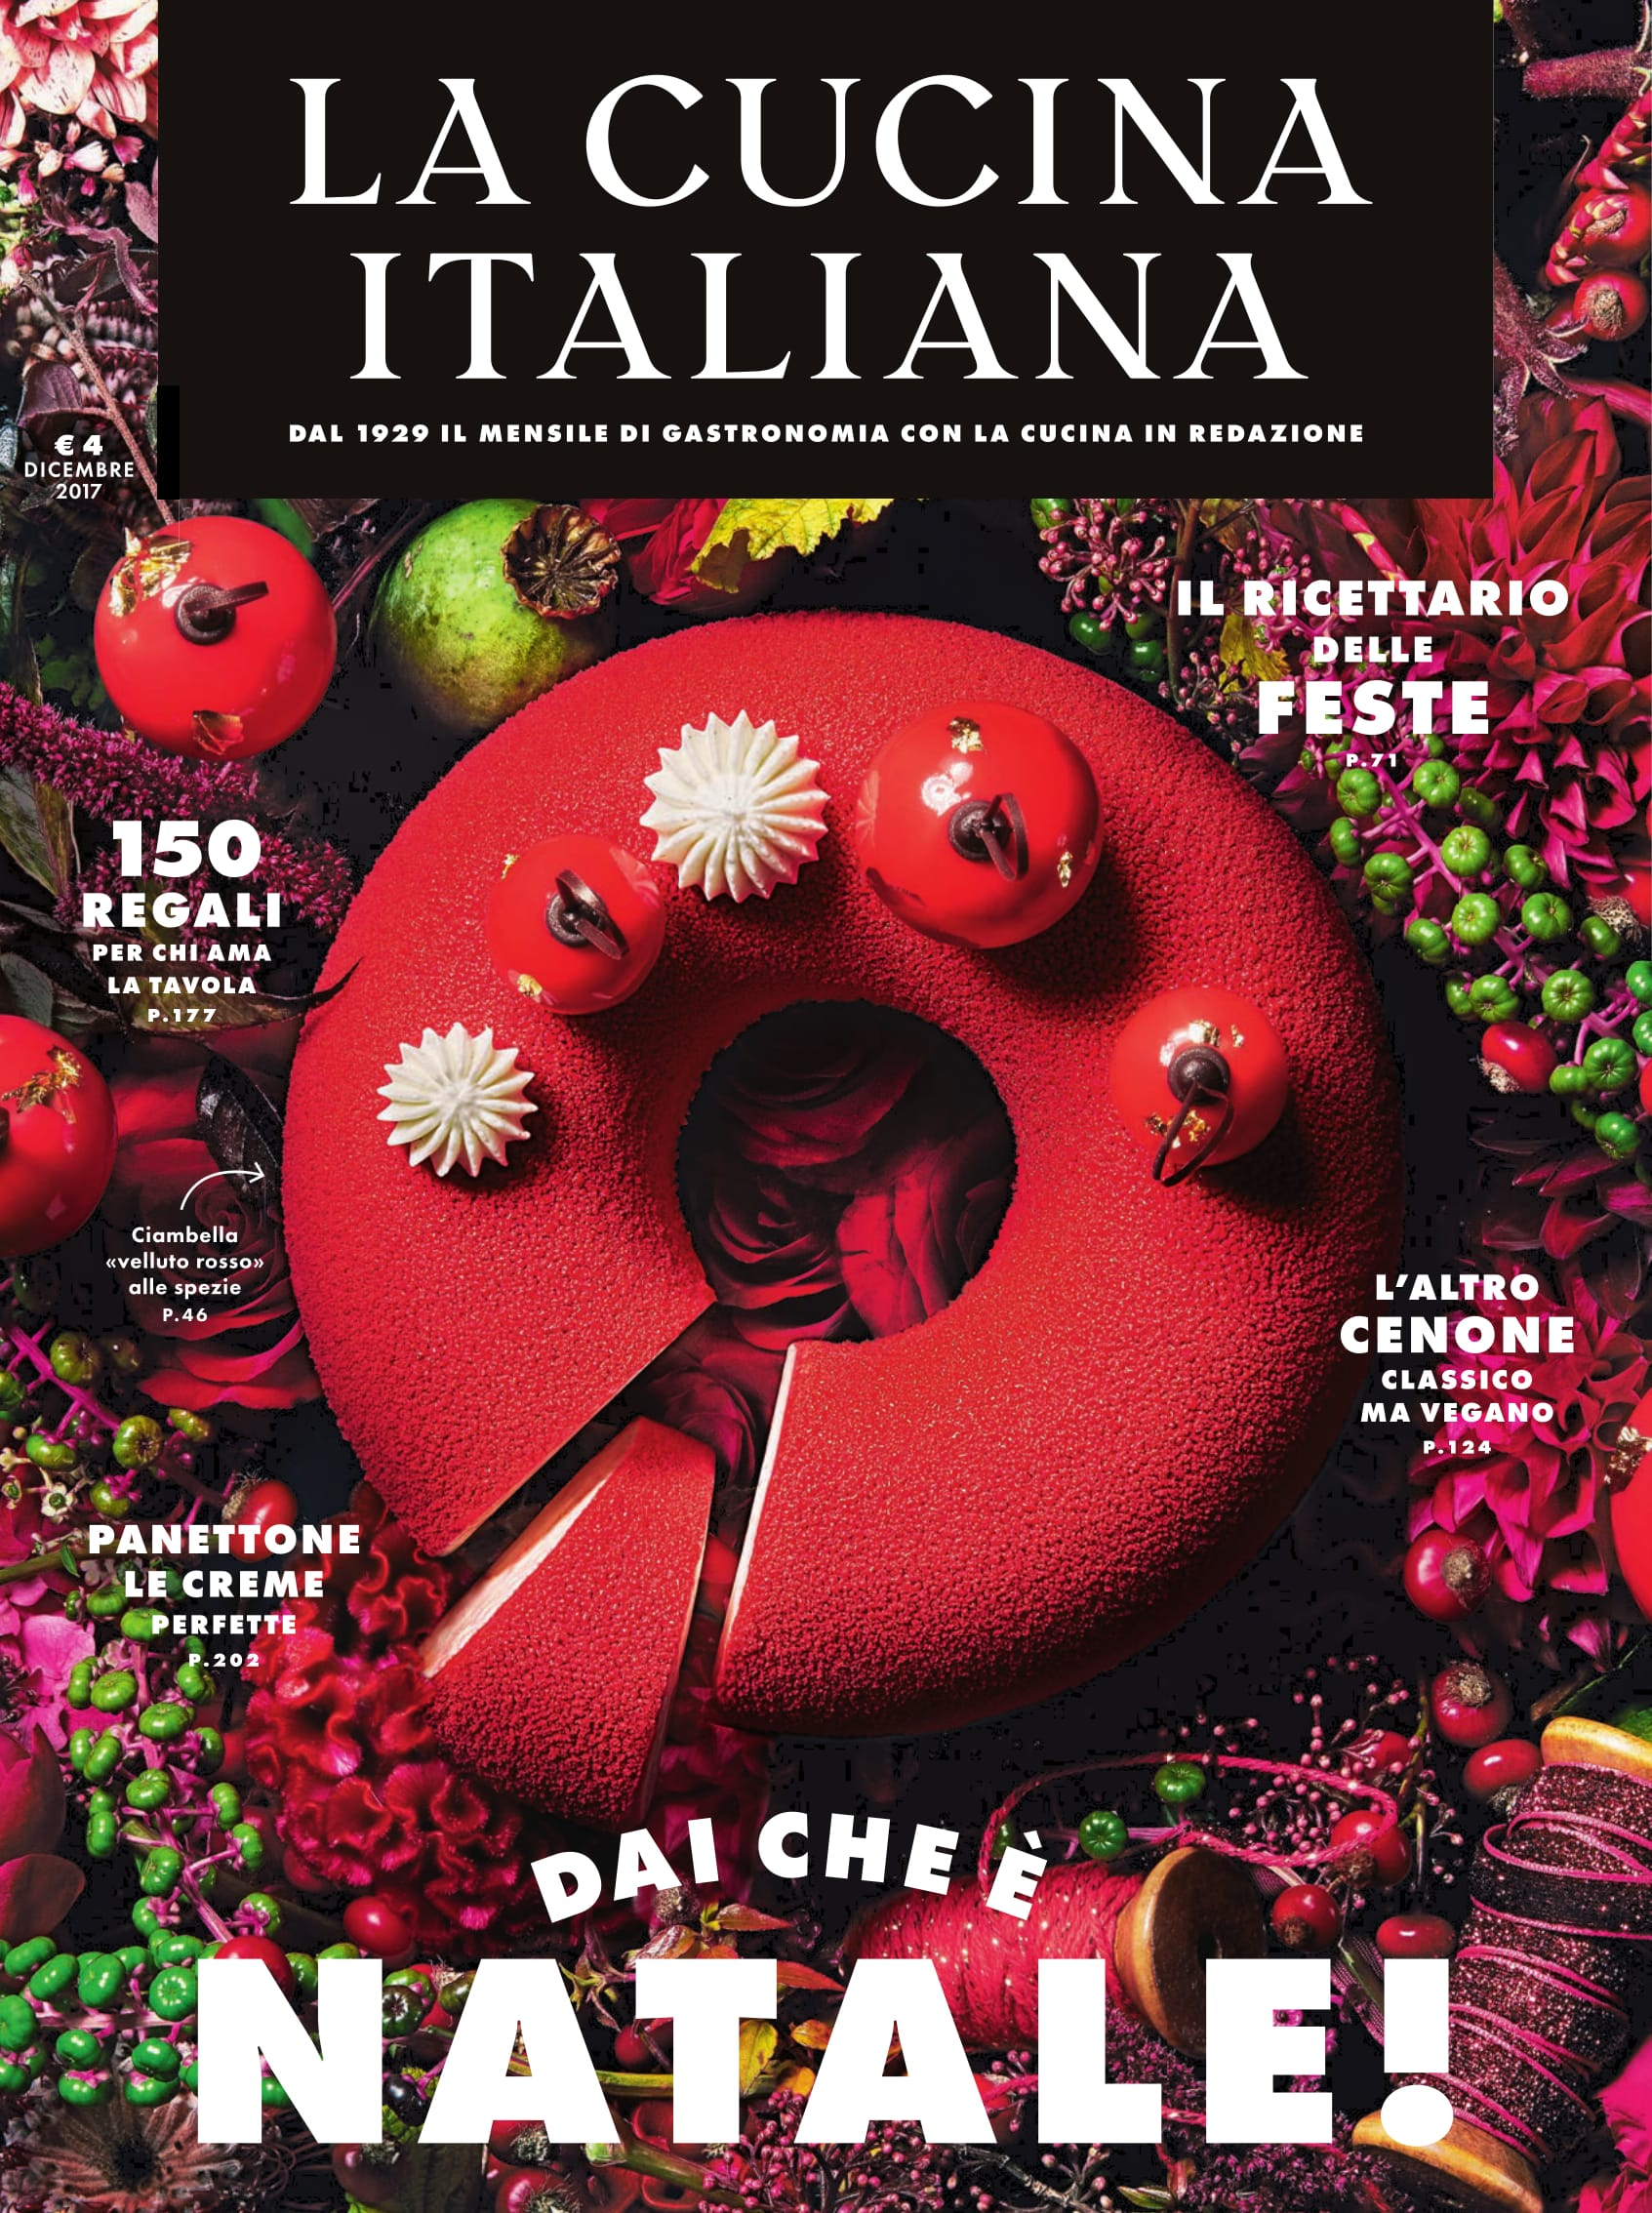 The Magazine Of La Cucina Italiana The New La Cucina Italiana Magazine A Signorina In Milan